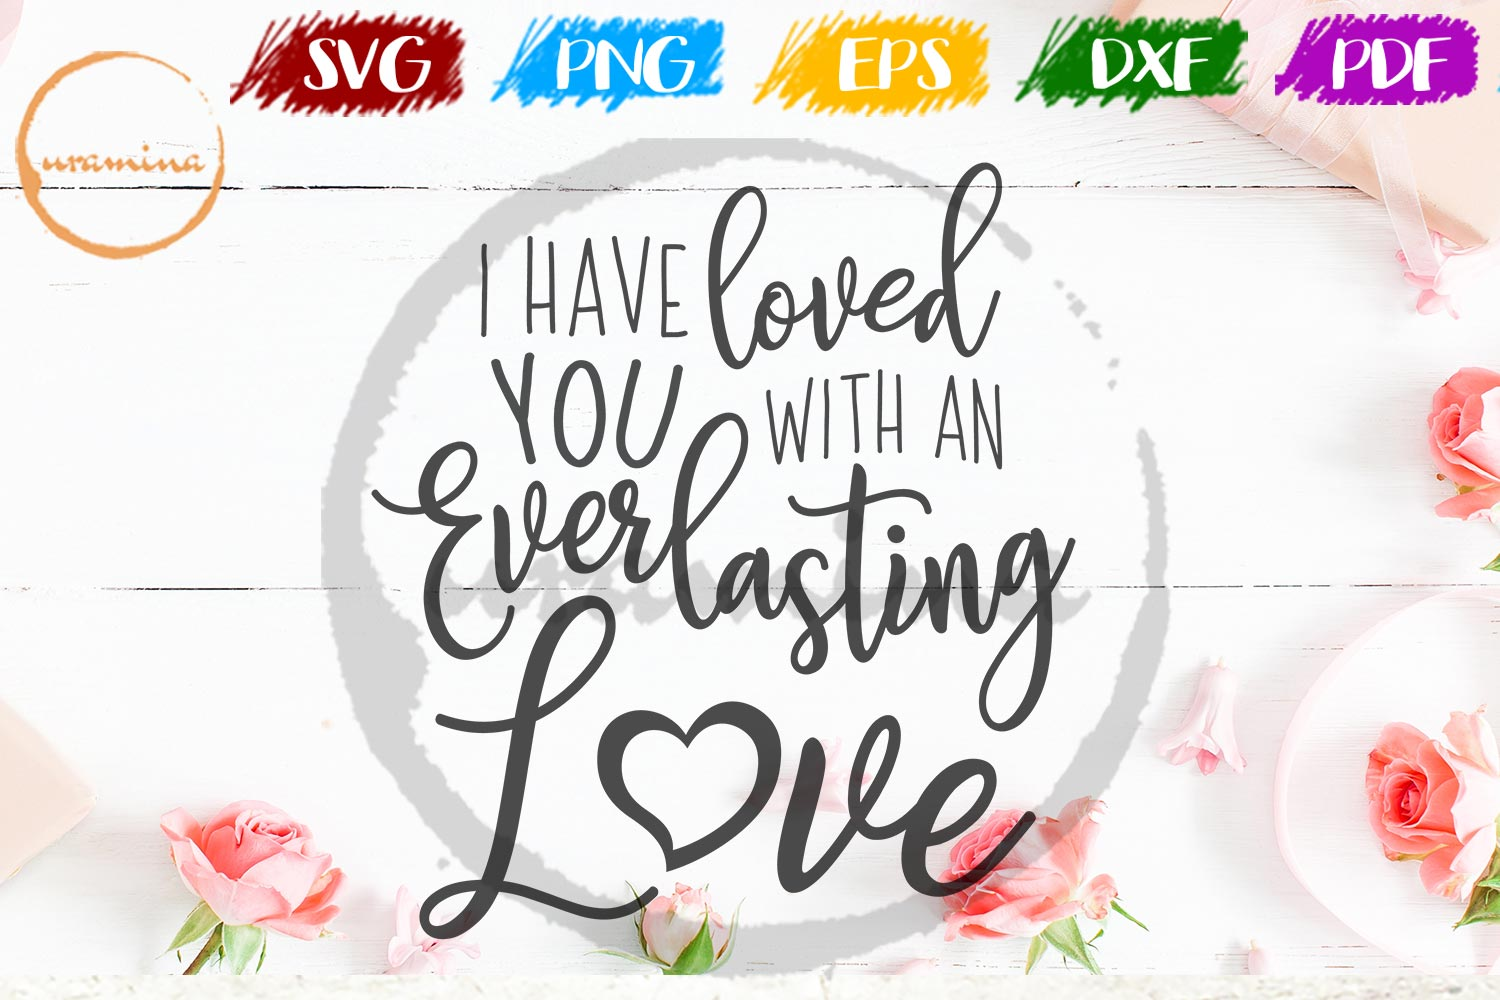 Download Free I Have Loved You With An Everlasting Graphic By Uramina for Cricut Explore, Silhouette and other cutting machines.